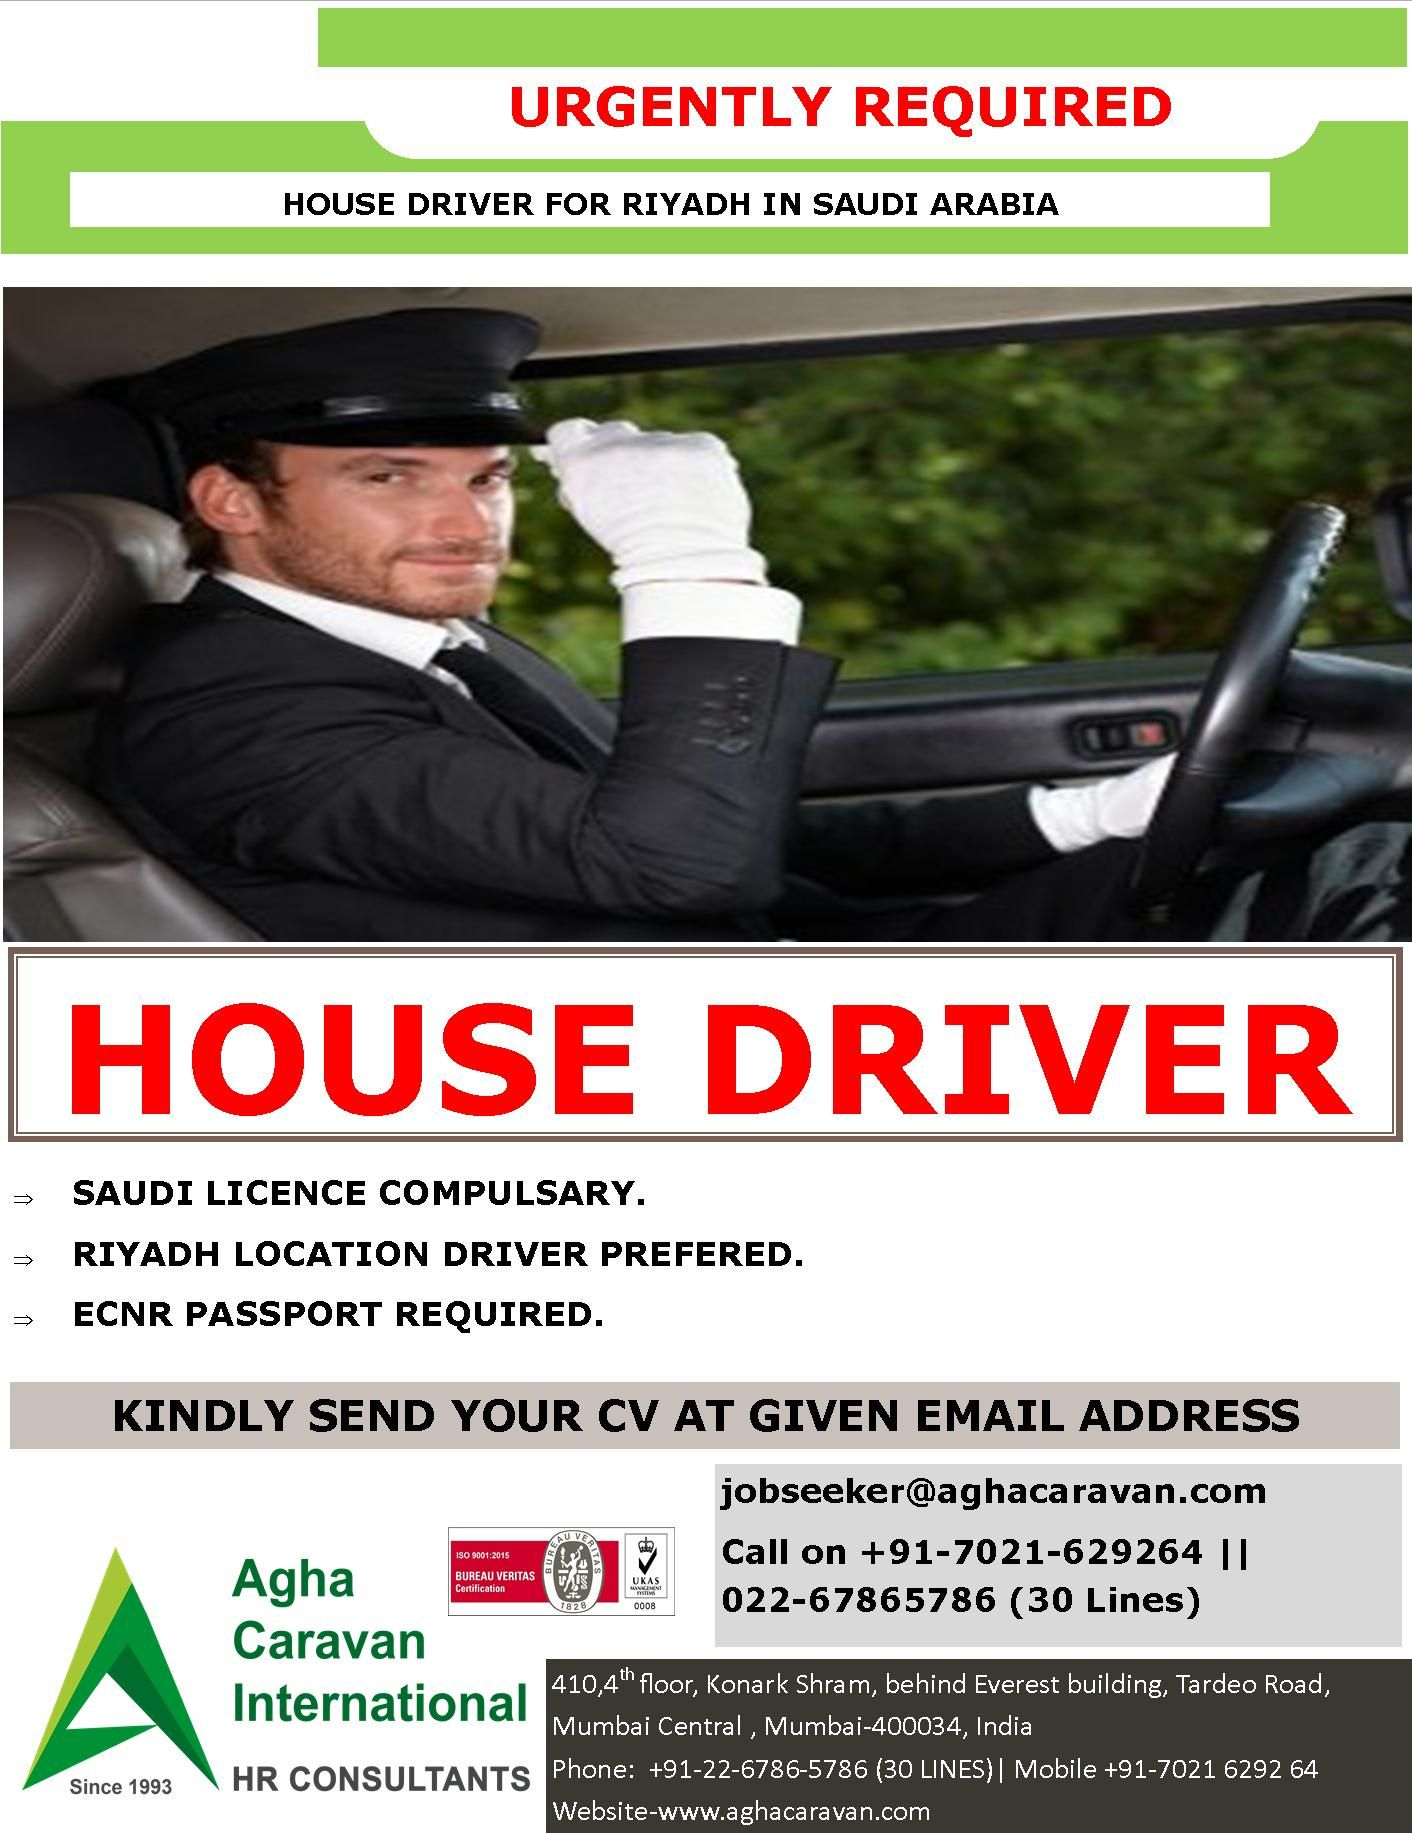 Urgently Required House Driver For Riyadh in